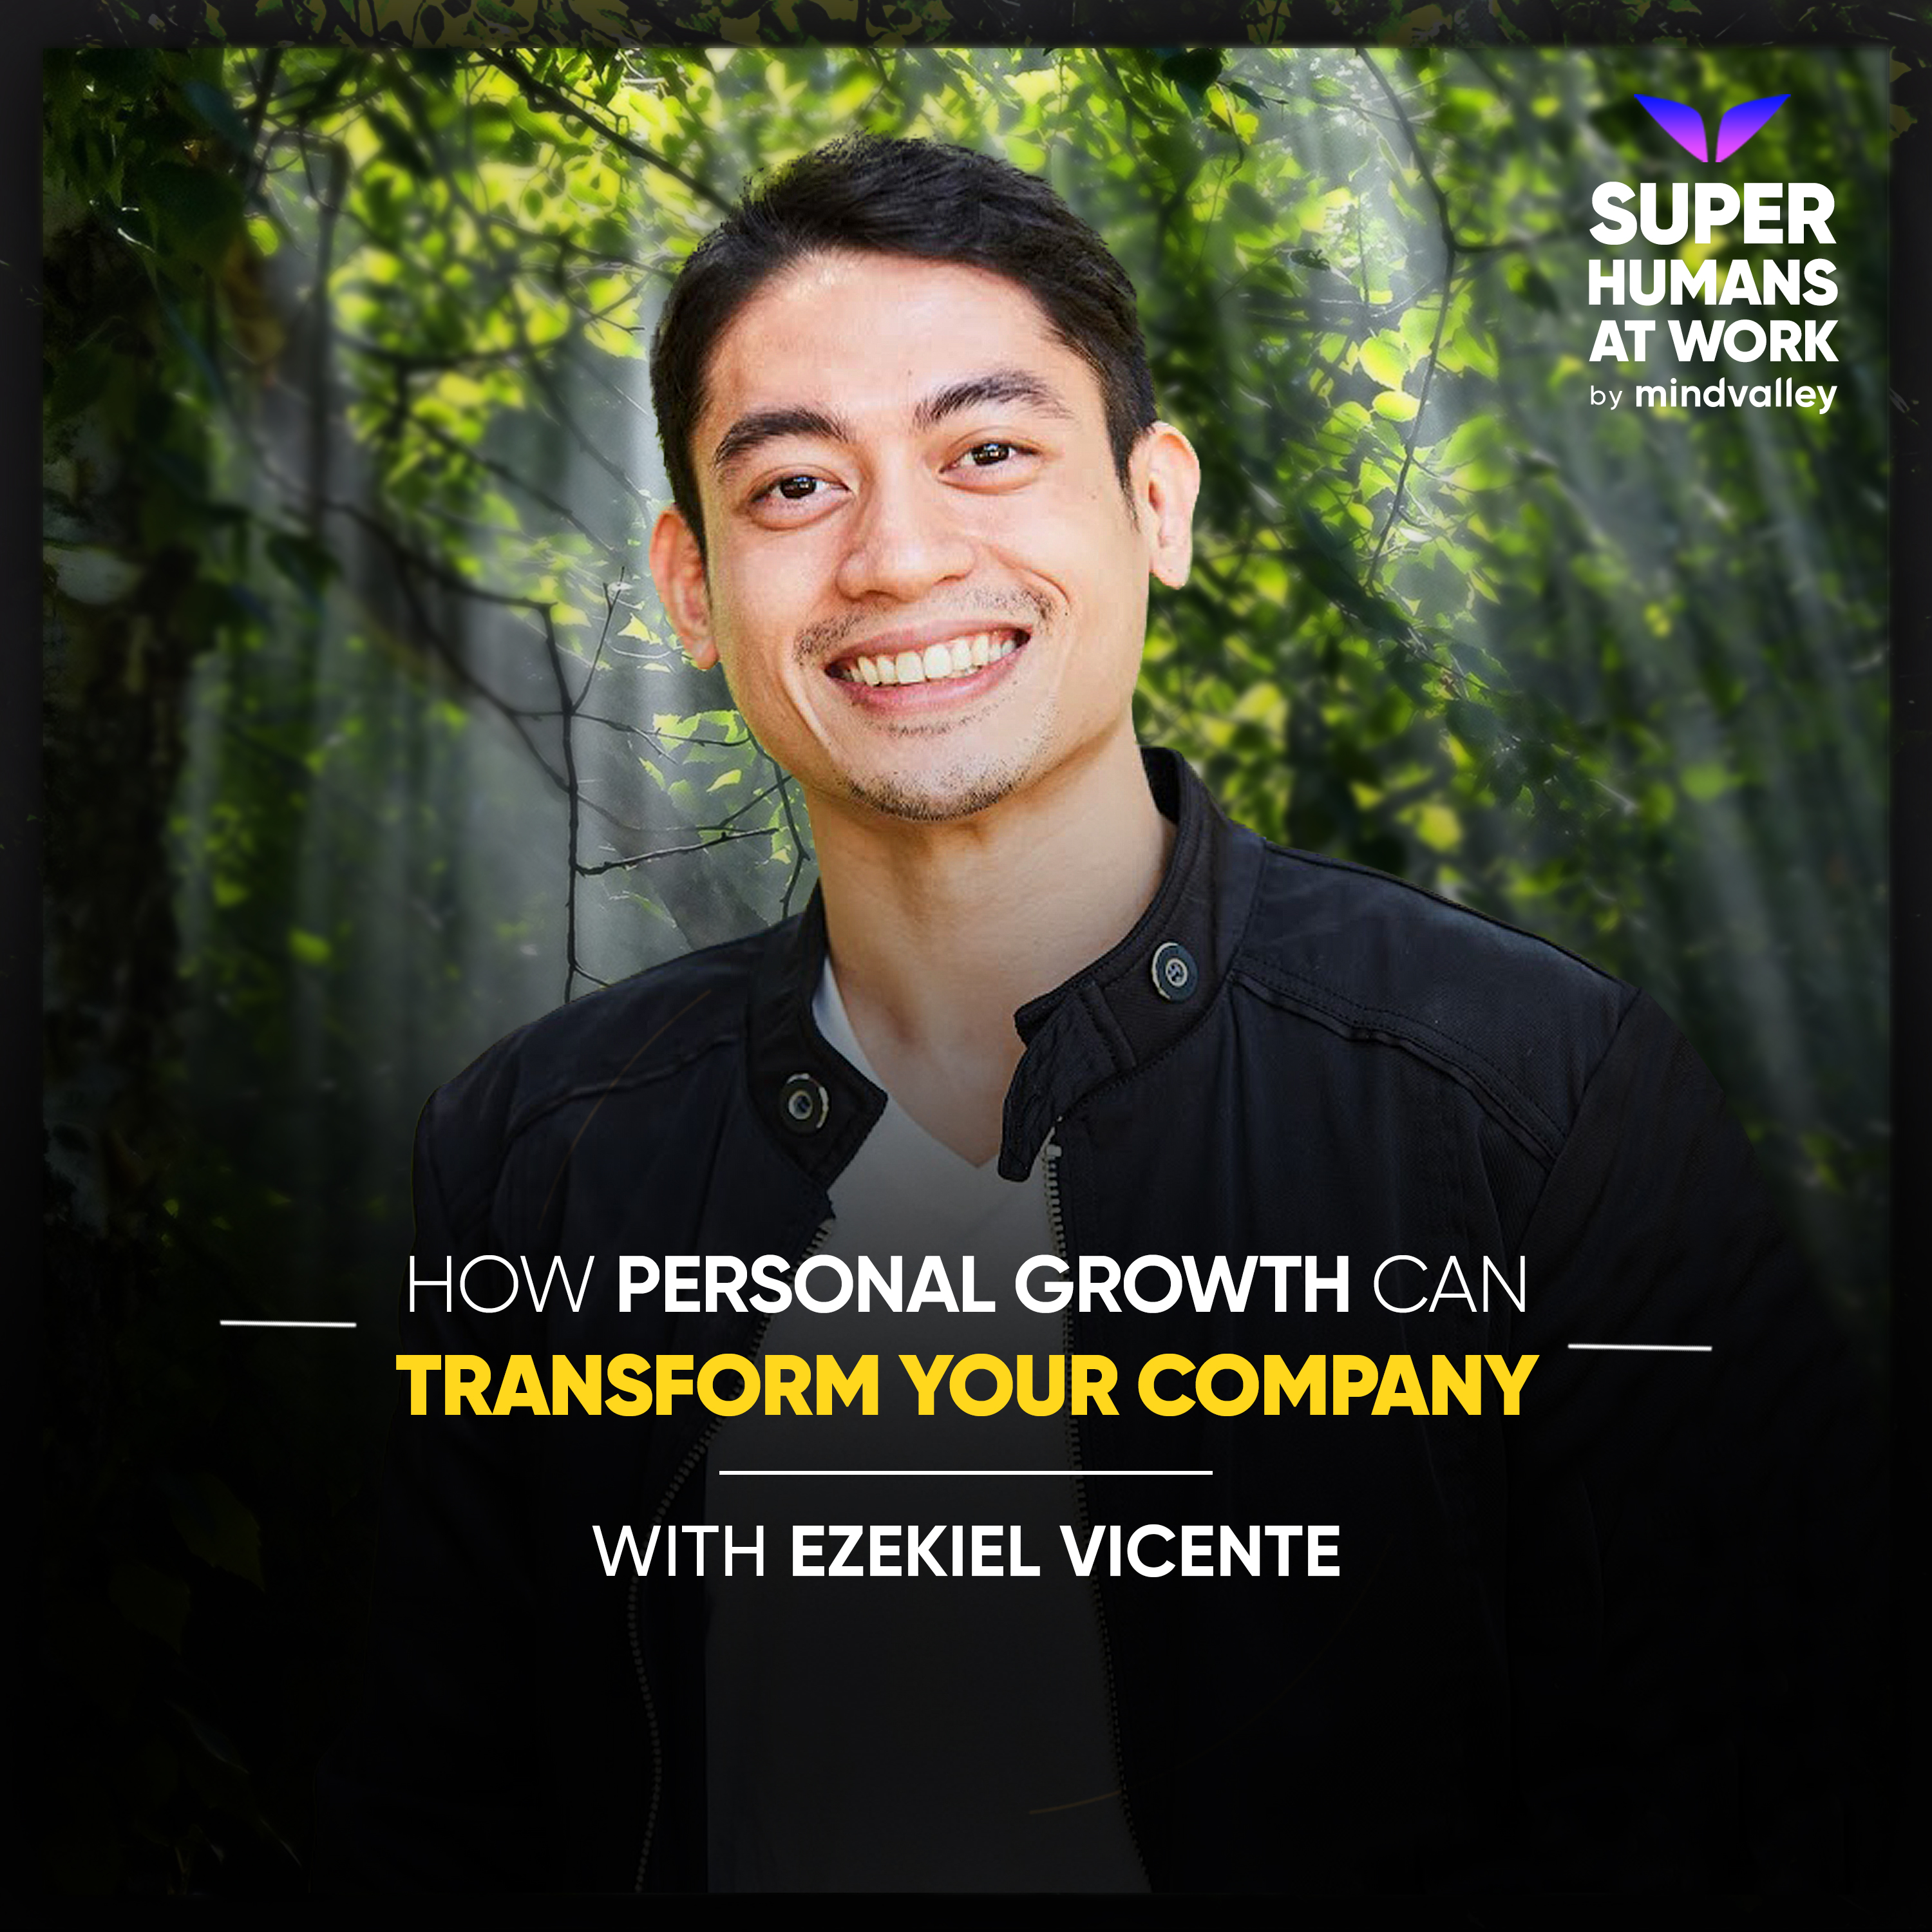 How Personal Growth Can Transform Your Company - Ezekiel Vicente